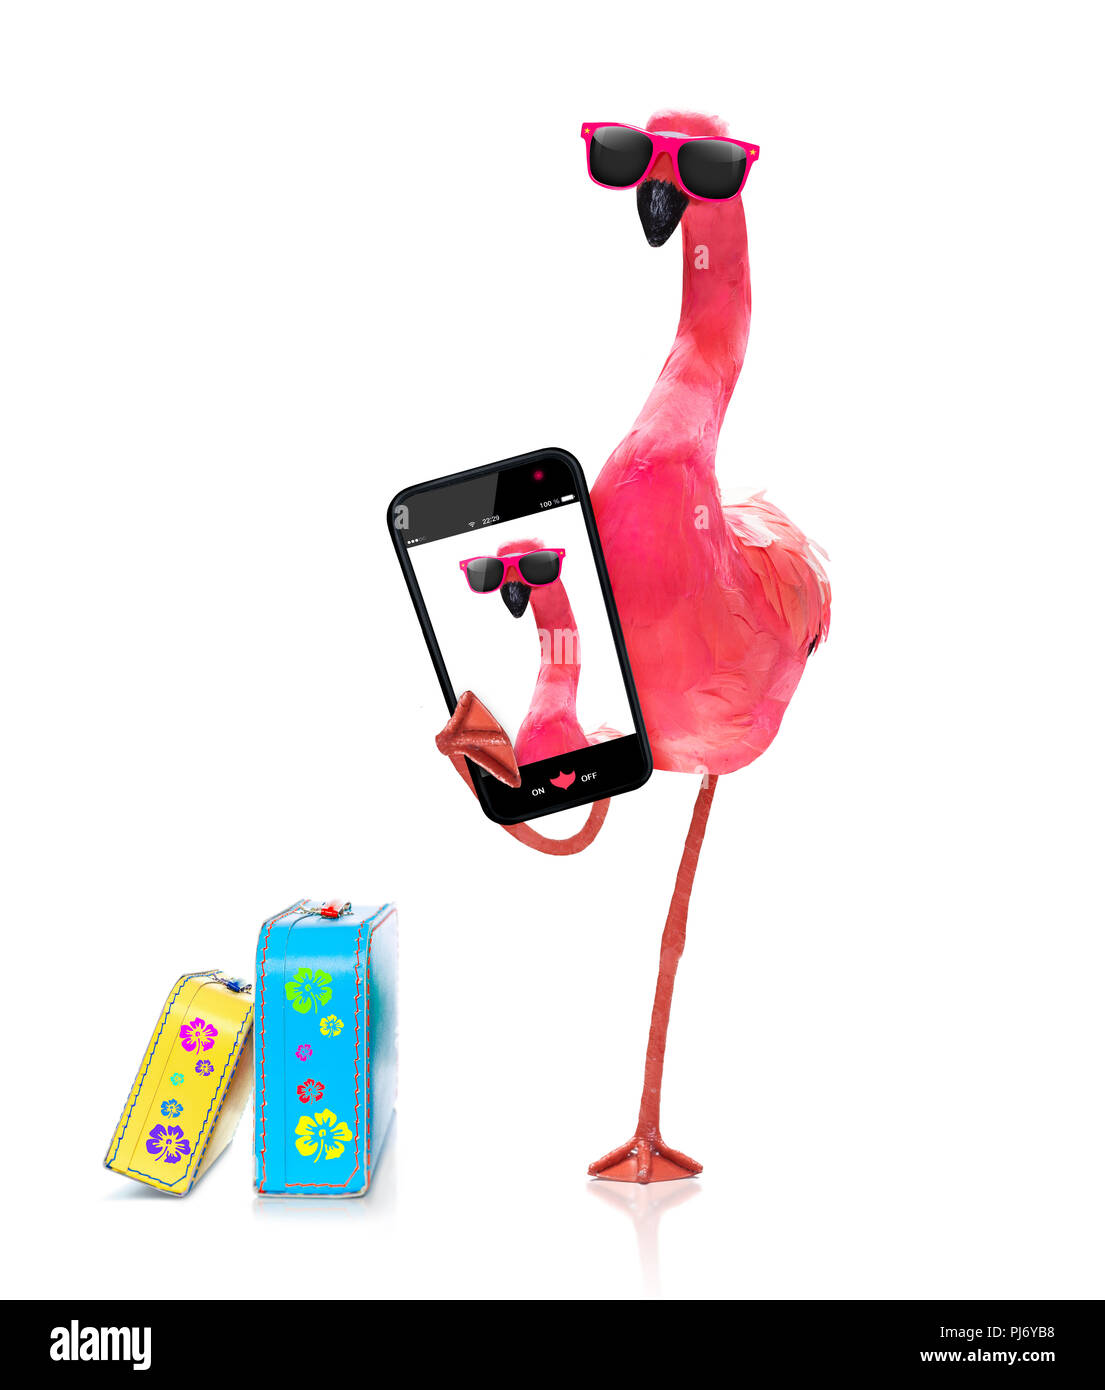 pink gay flamingo taking a selfie, on summer vacation holidays, isolated on white background - Stock Image